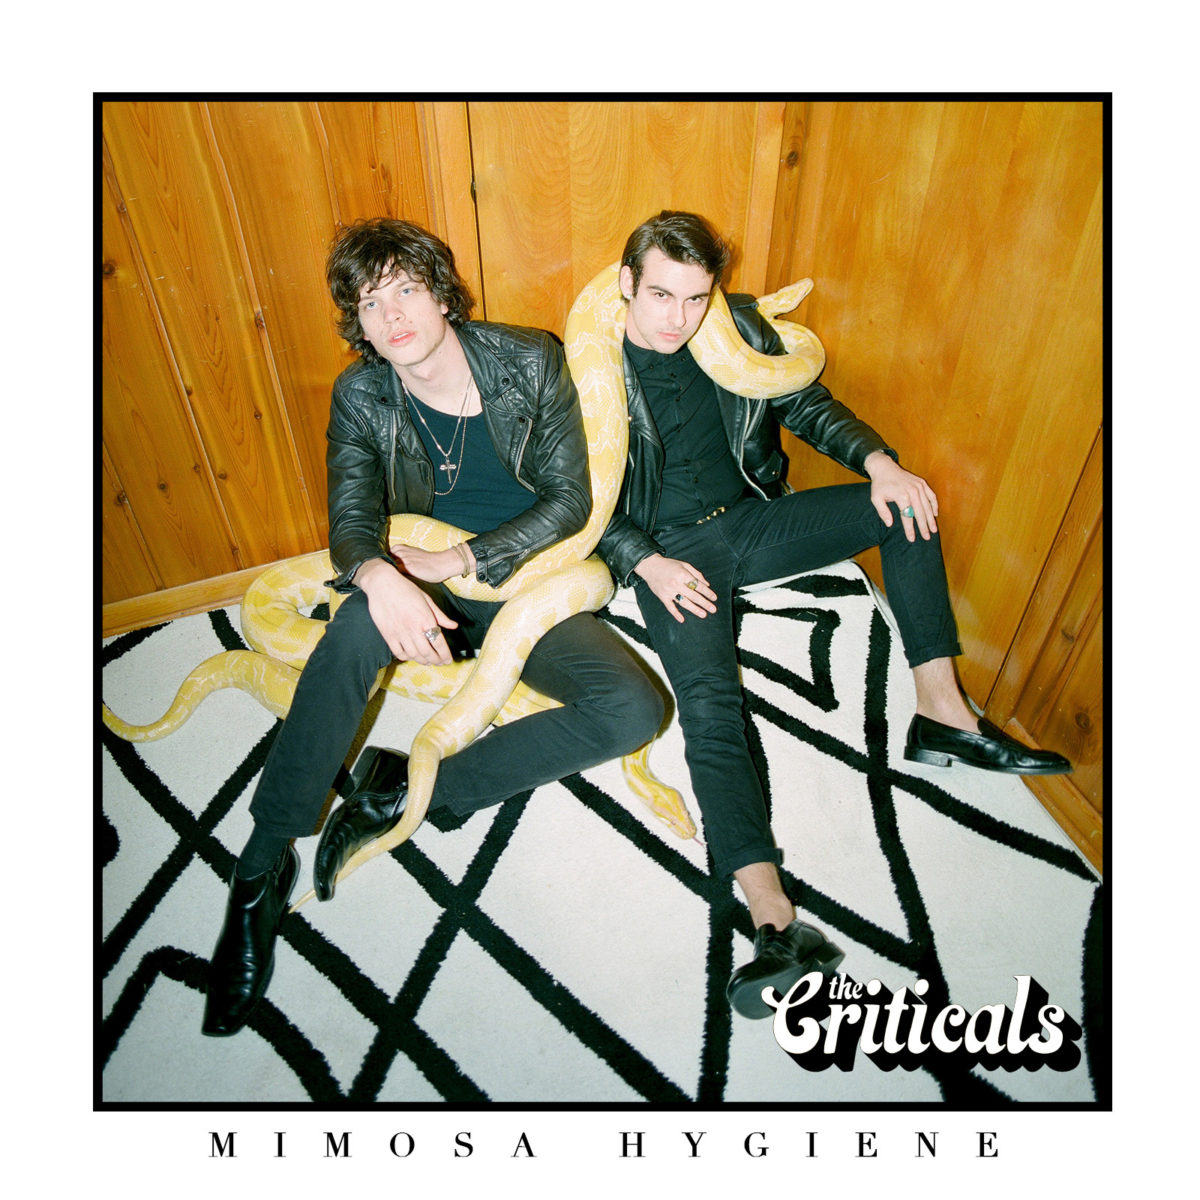 Mimosa Hygiene is the first collection from Nashville based duo The Criticals